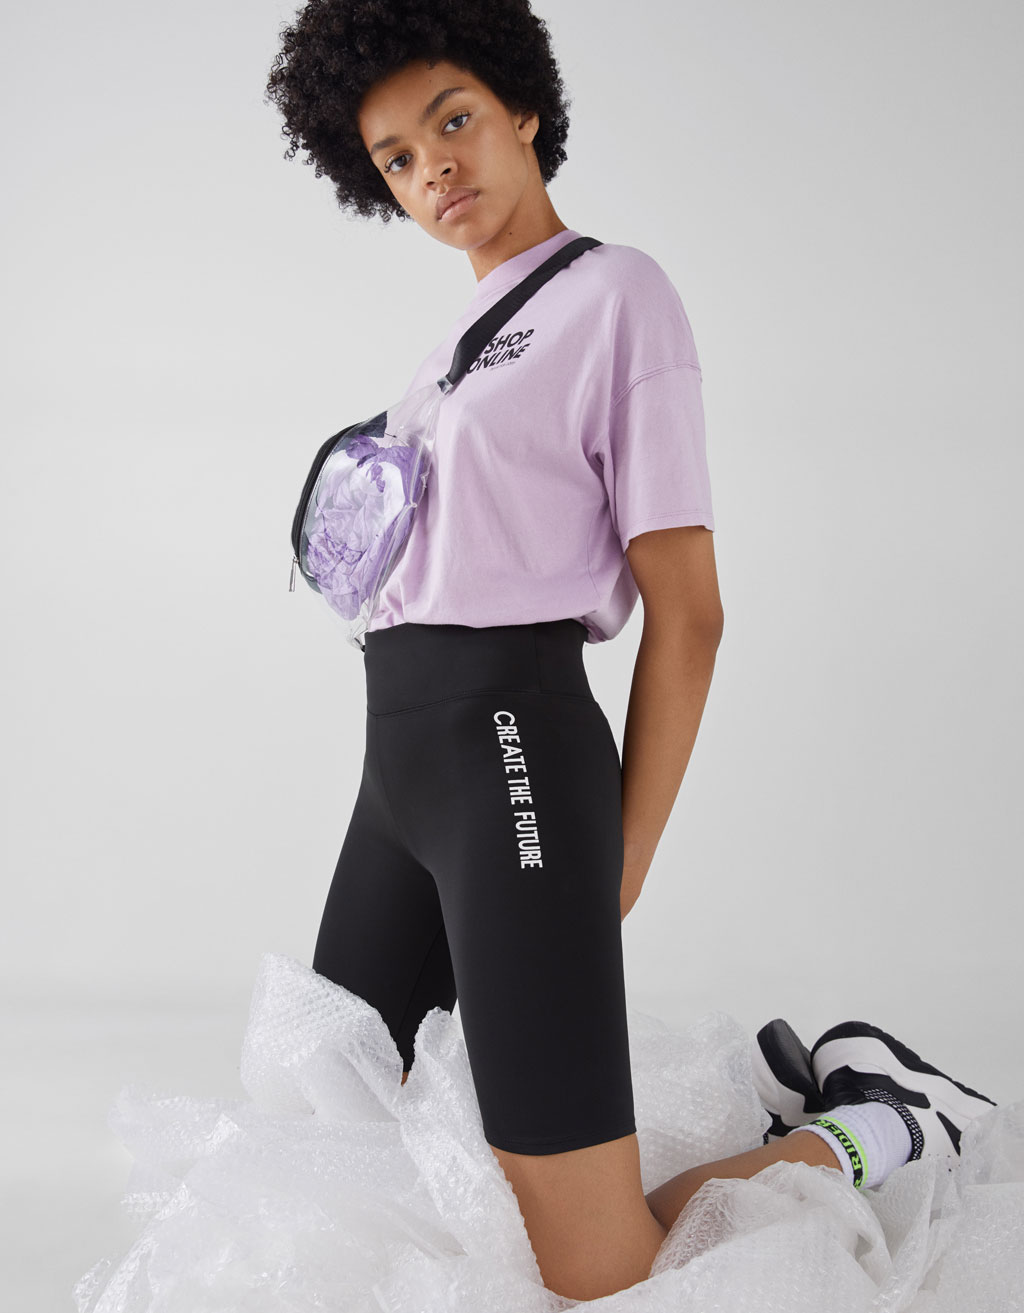 Cycling shorts with side text